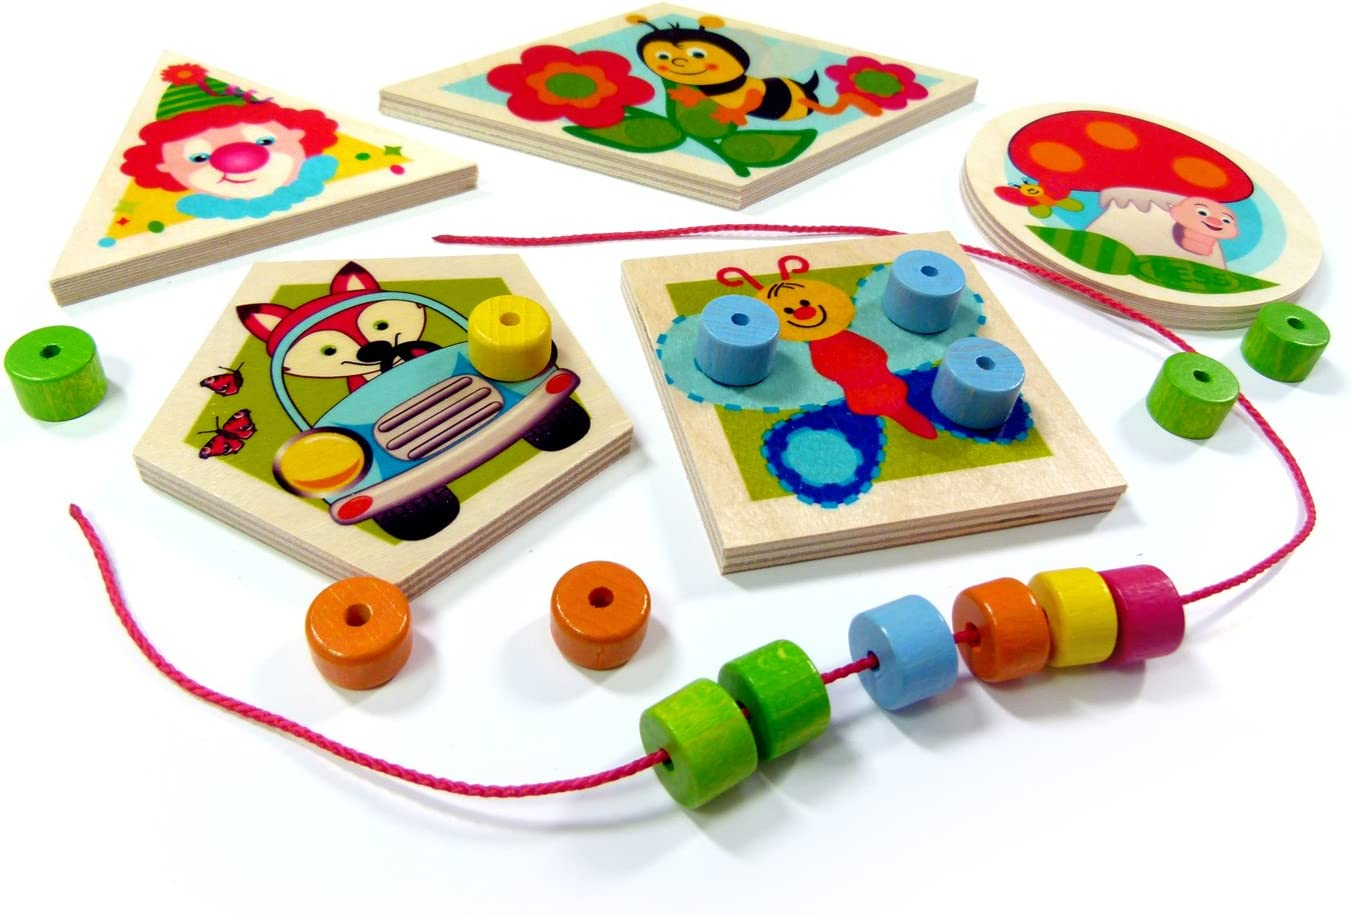 Hess Wooden World of Colours Threading Baby Toy